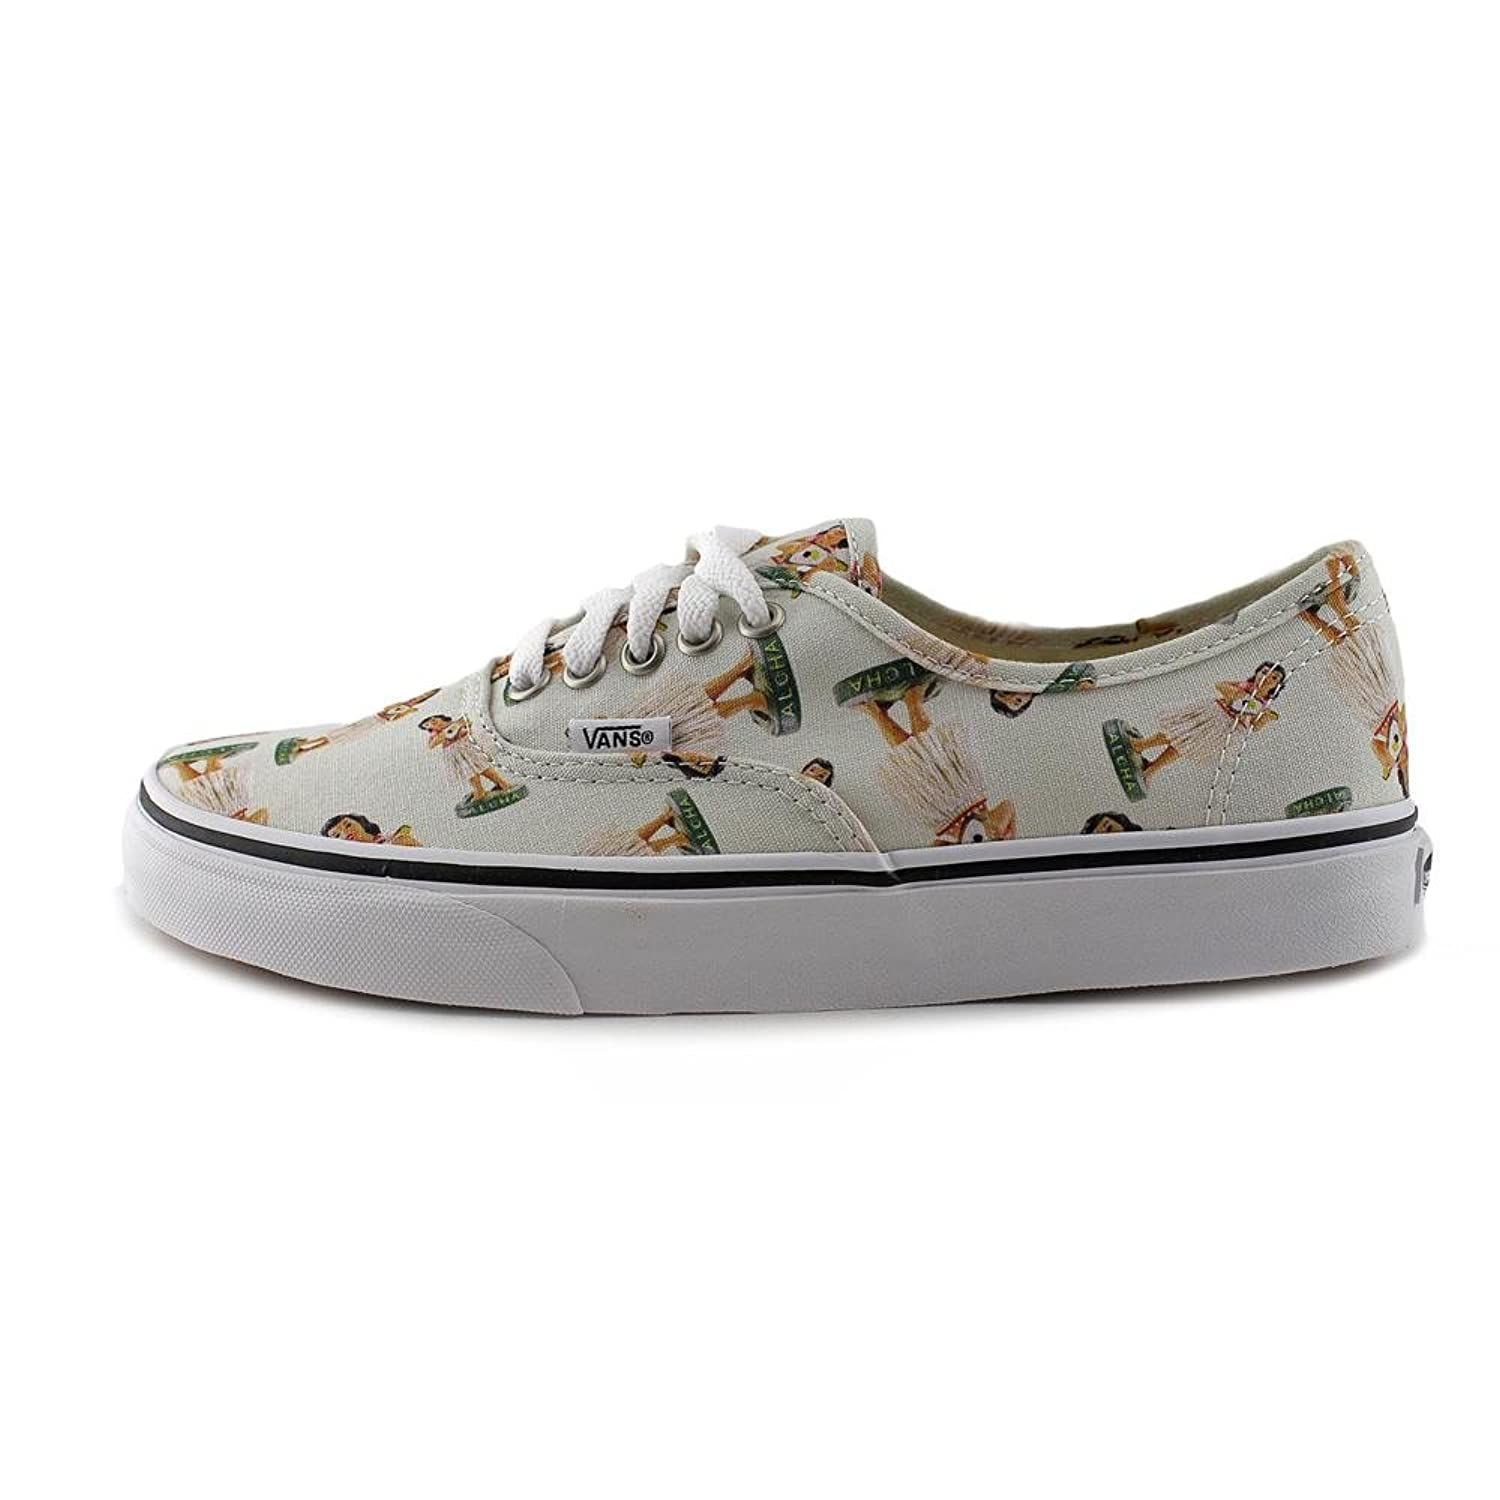 Chaussures Vans Taille 5 Pour Les Femmes UgYis3S